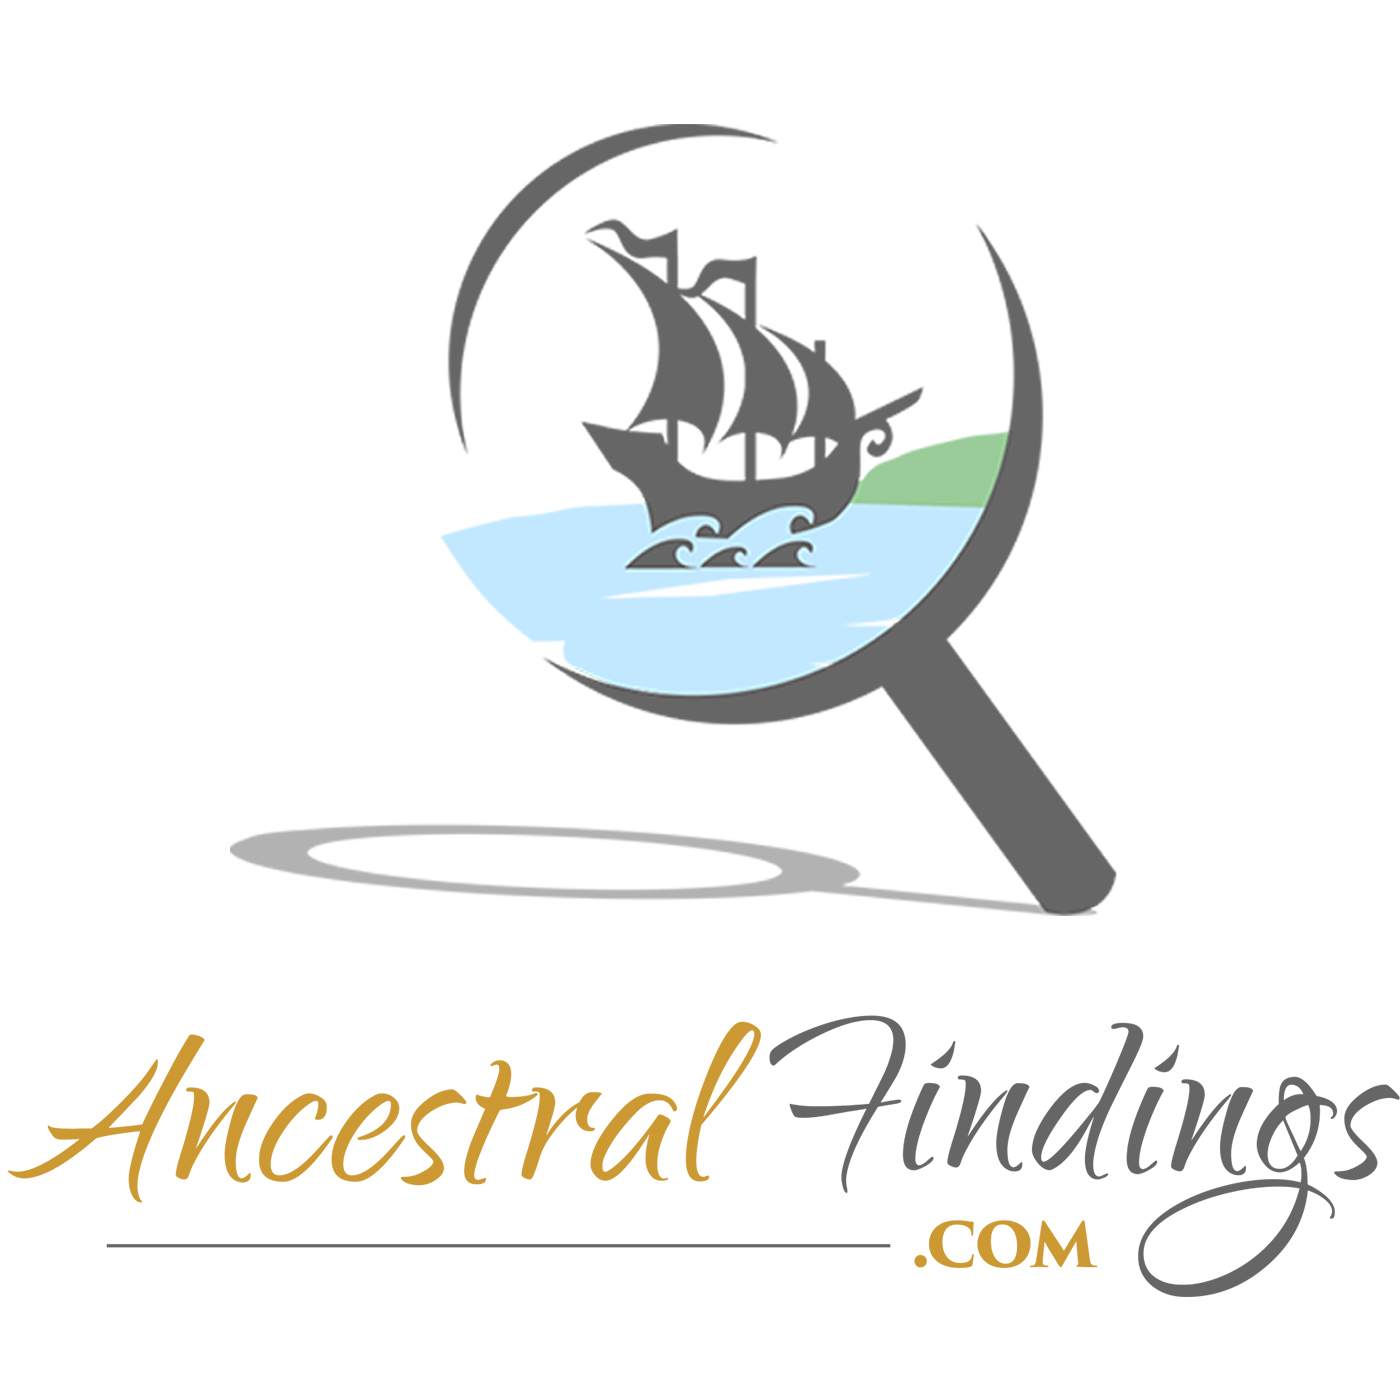 Ancestral Findings - Genealogy Podcast